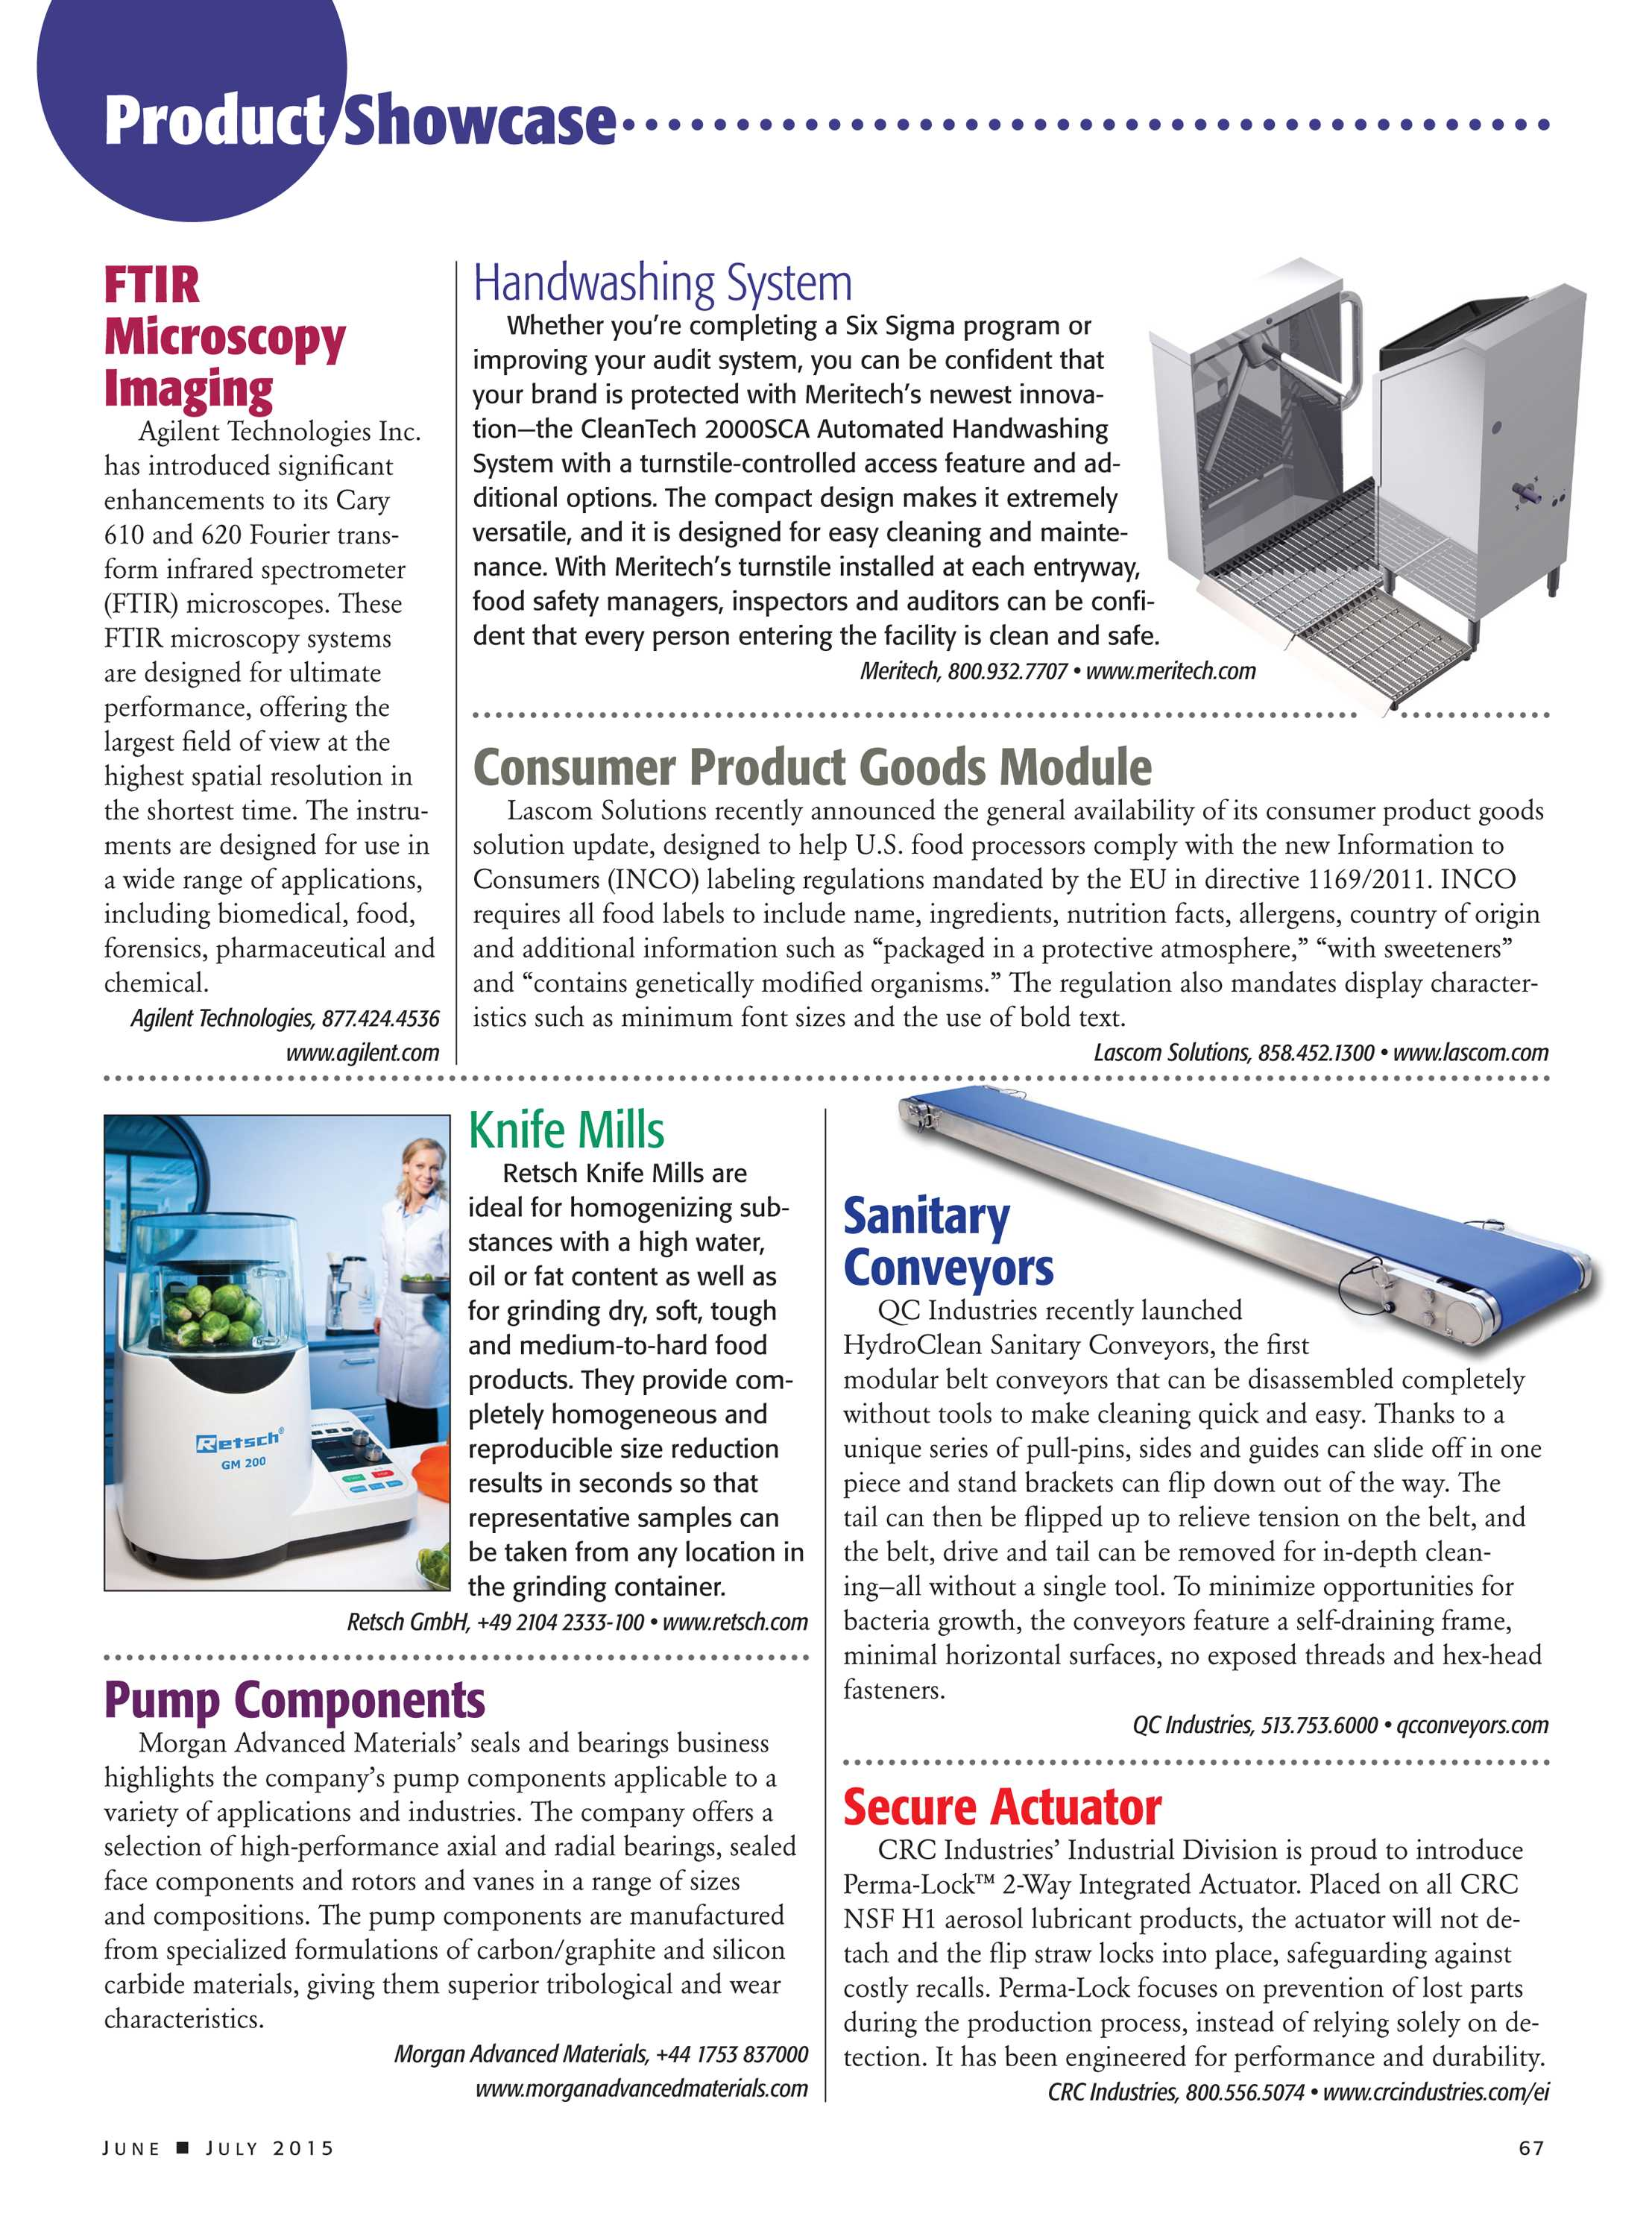 Food Safety Magazine - June/July 2015 - page 67